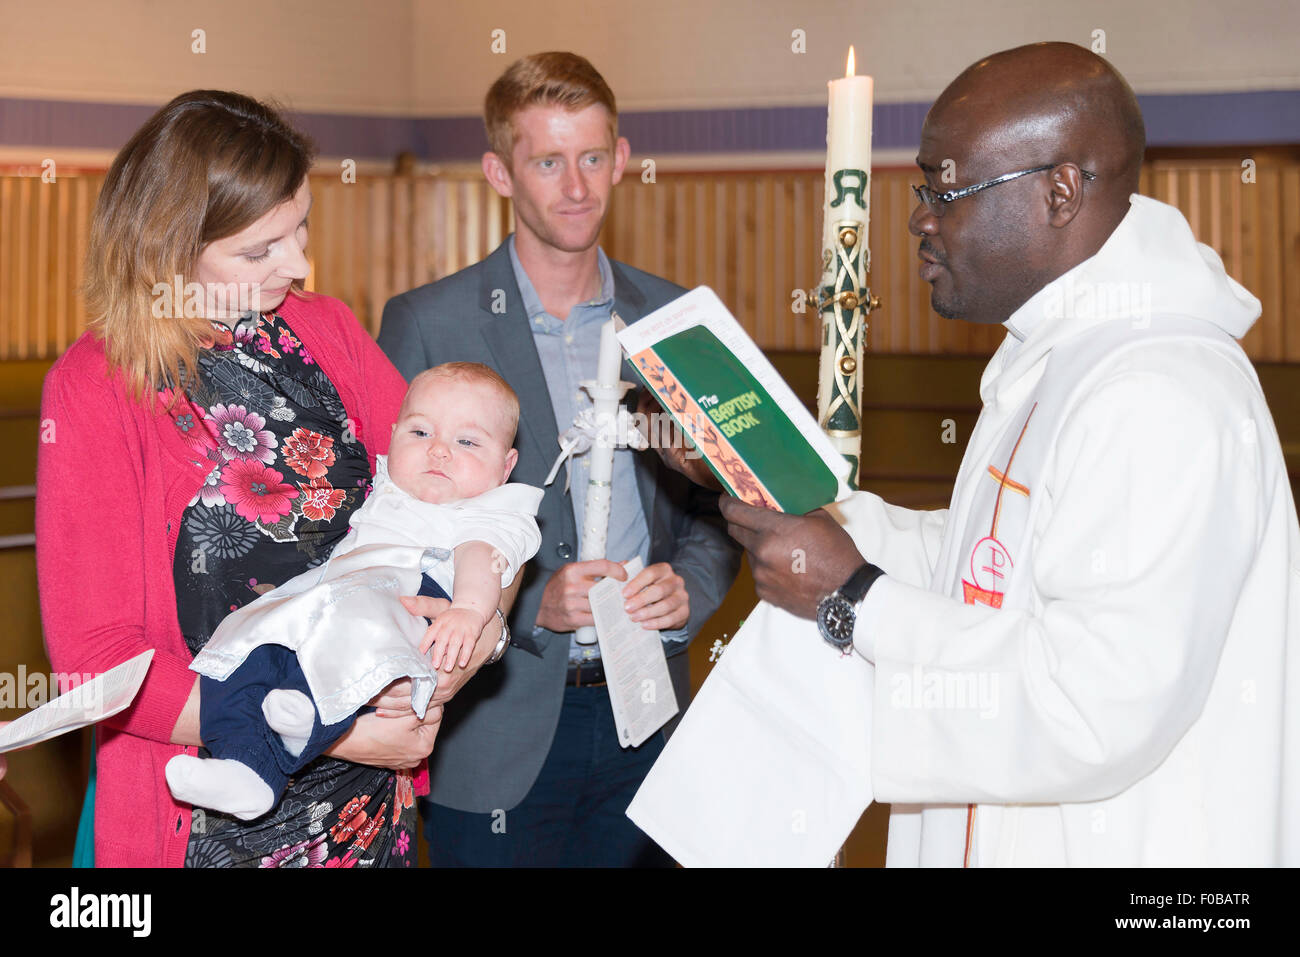 Family christening at St Augustines Roman Catholic Church, Daventry, Northamptonshire, England, United Kingdom - Stock Image